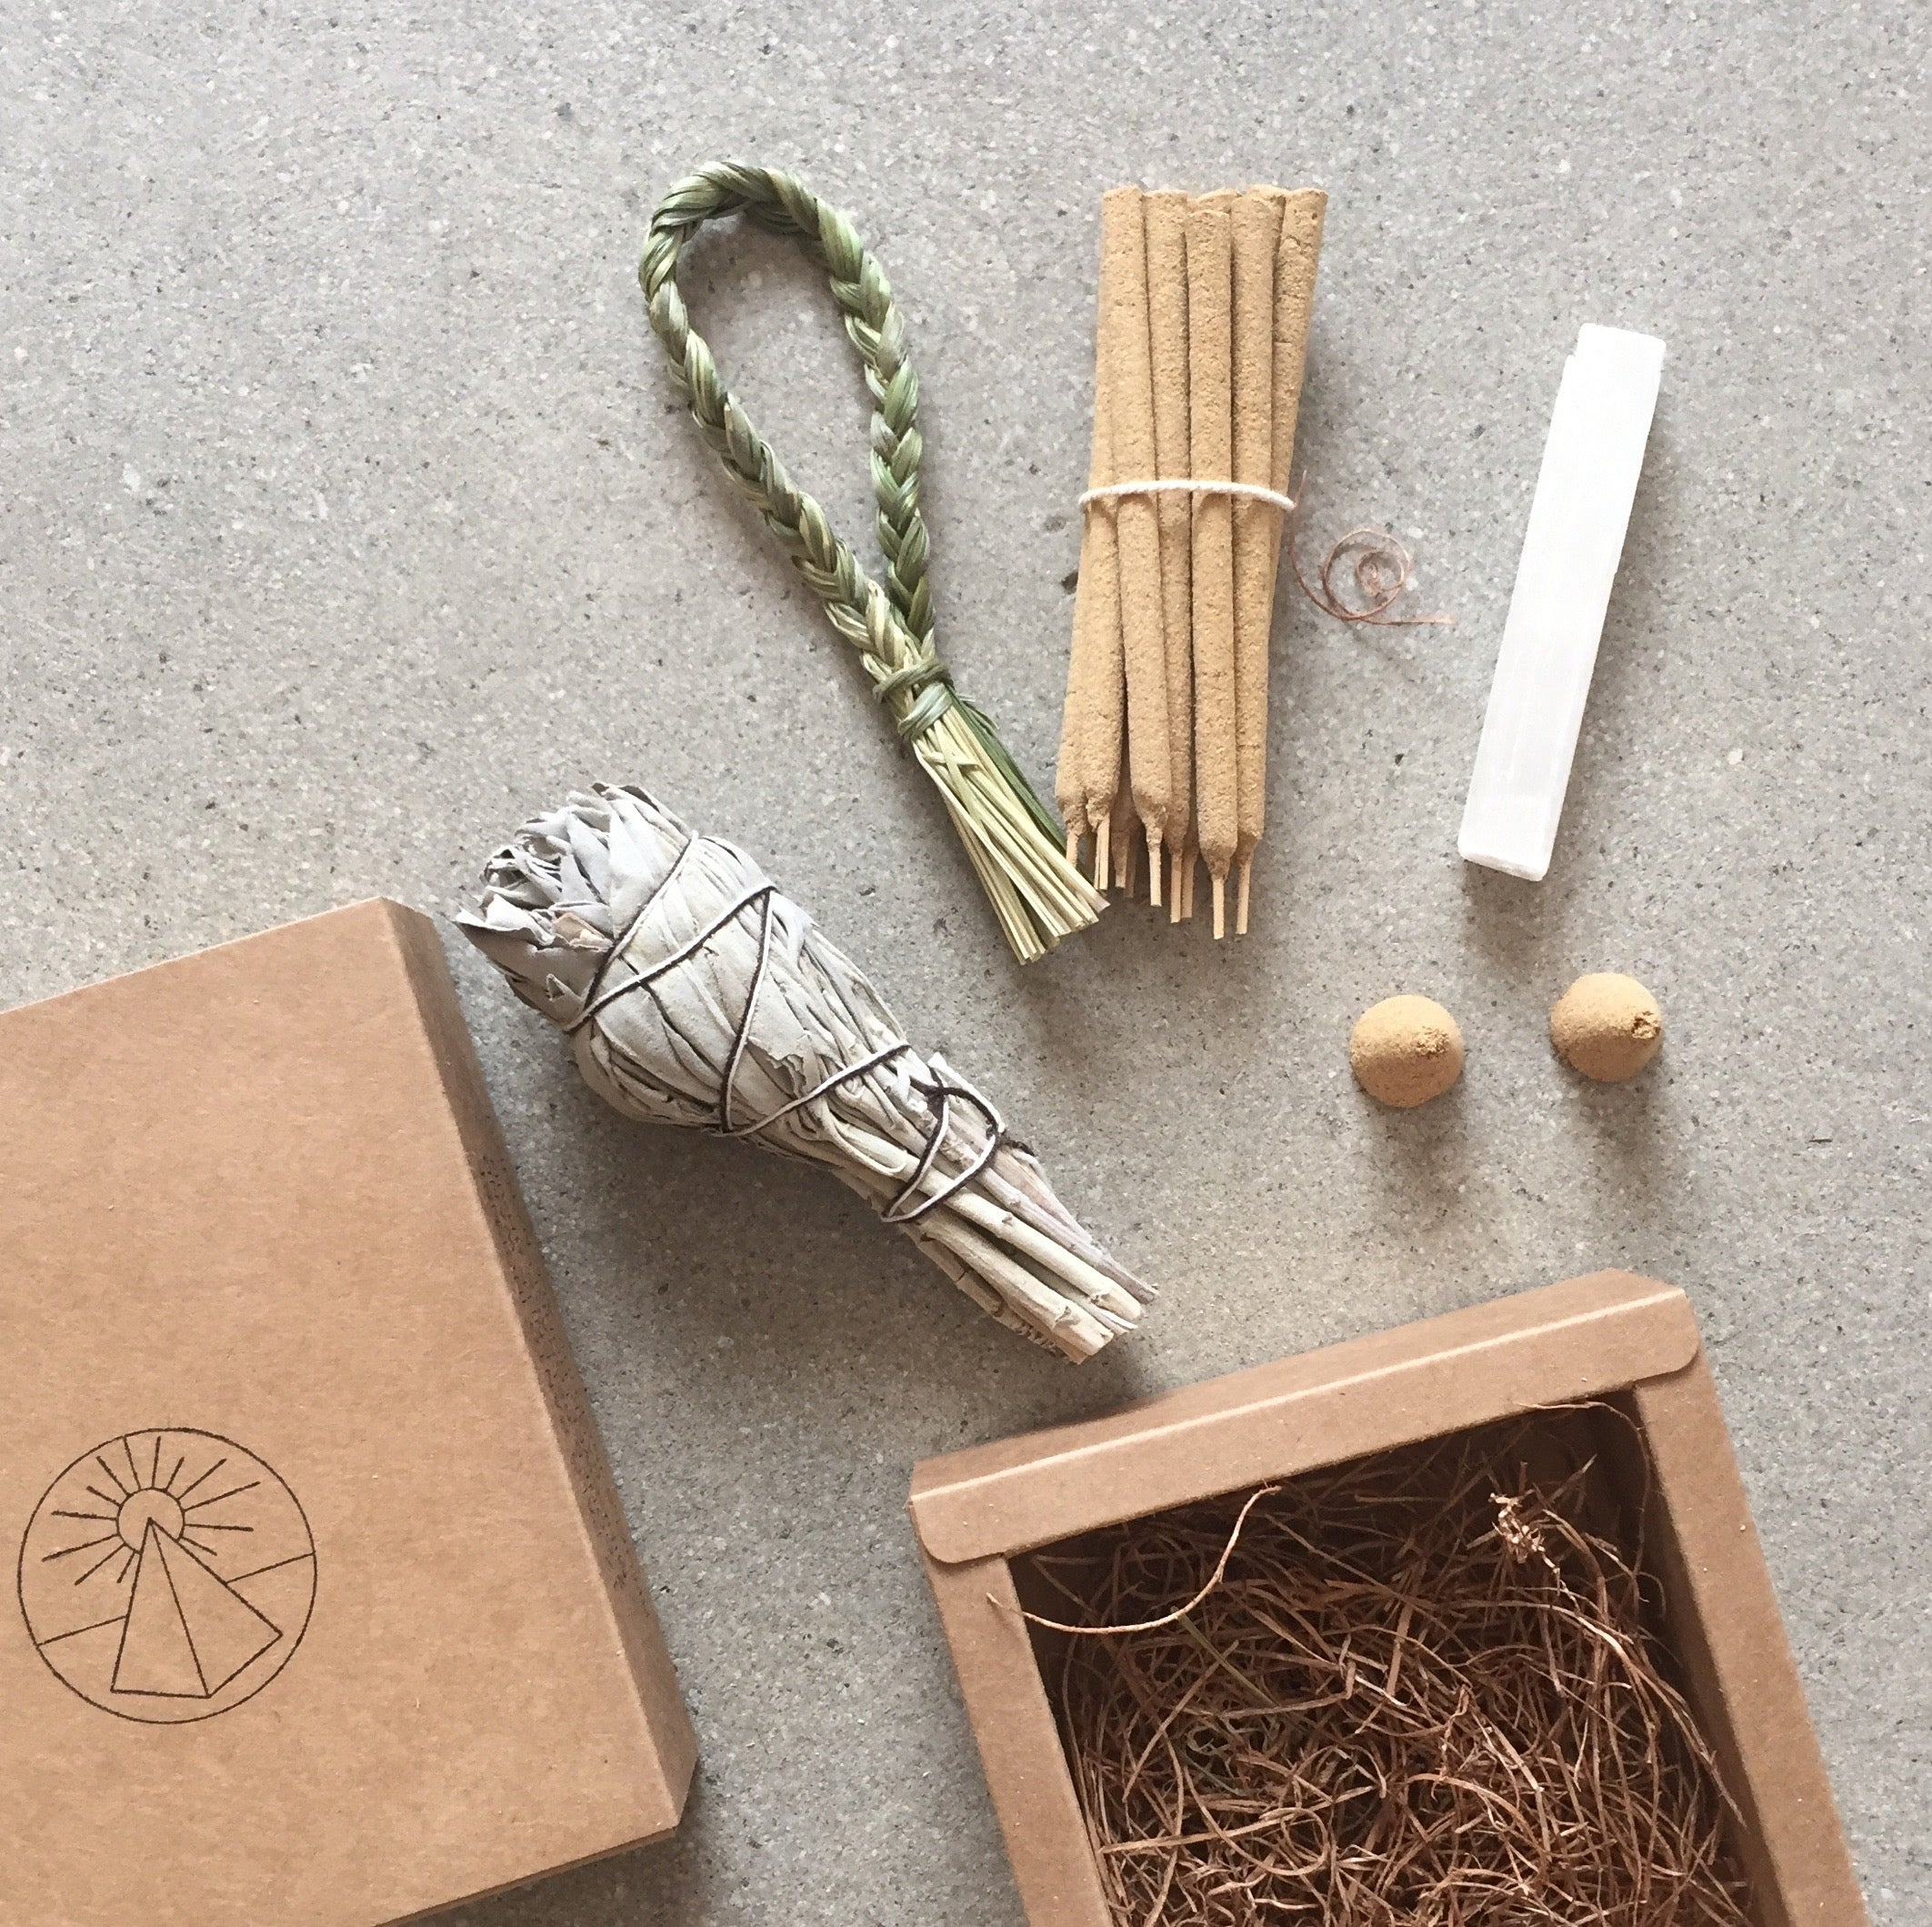 Rituals Incense Offerings Kit